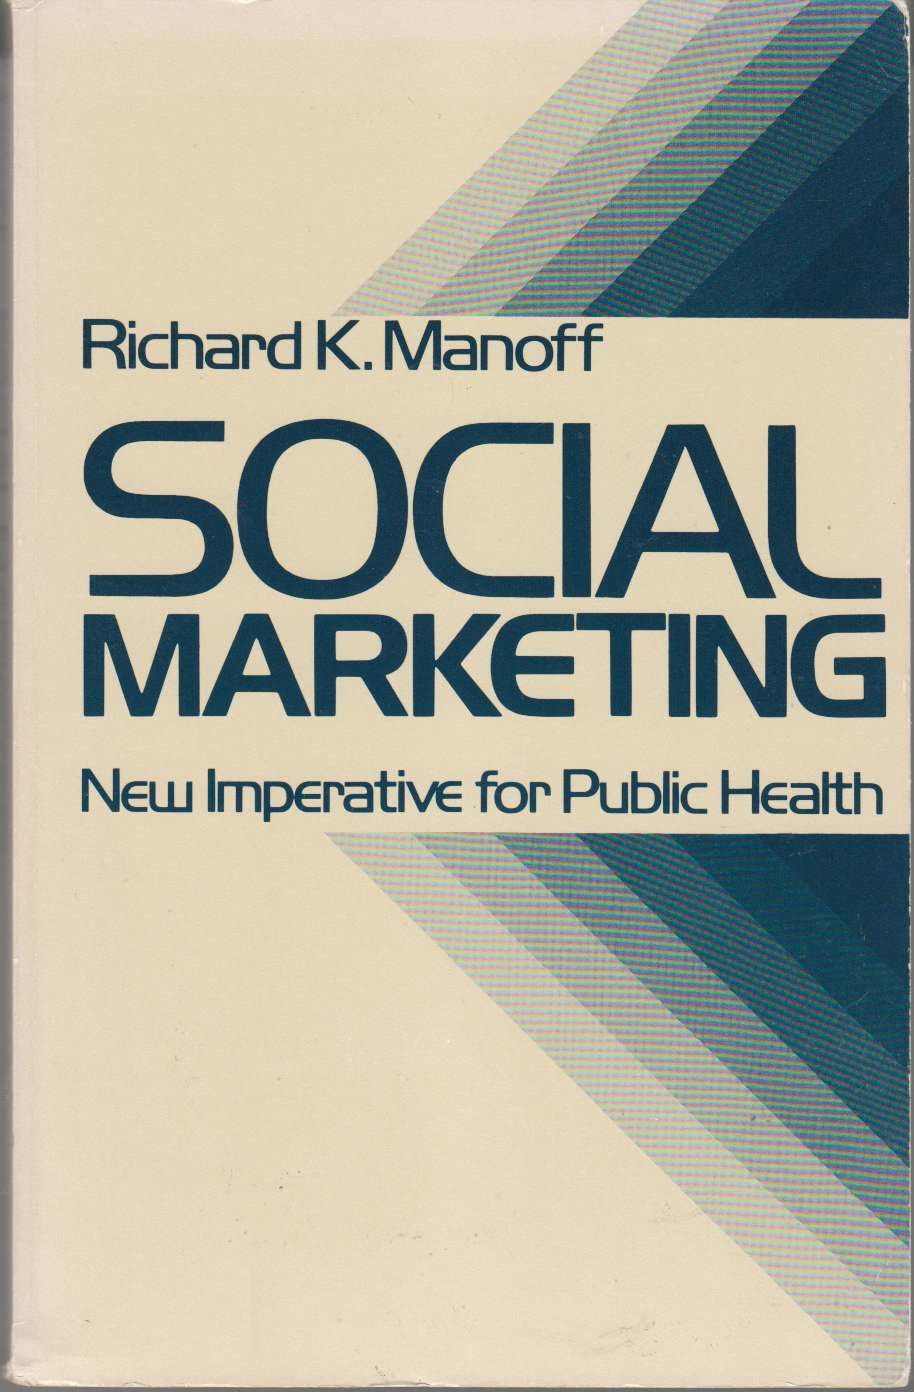 Image for Social Marketing New Imperative for Public Health